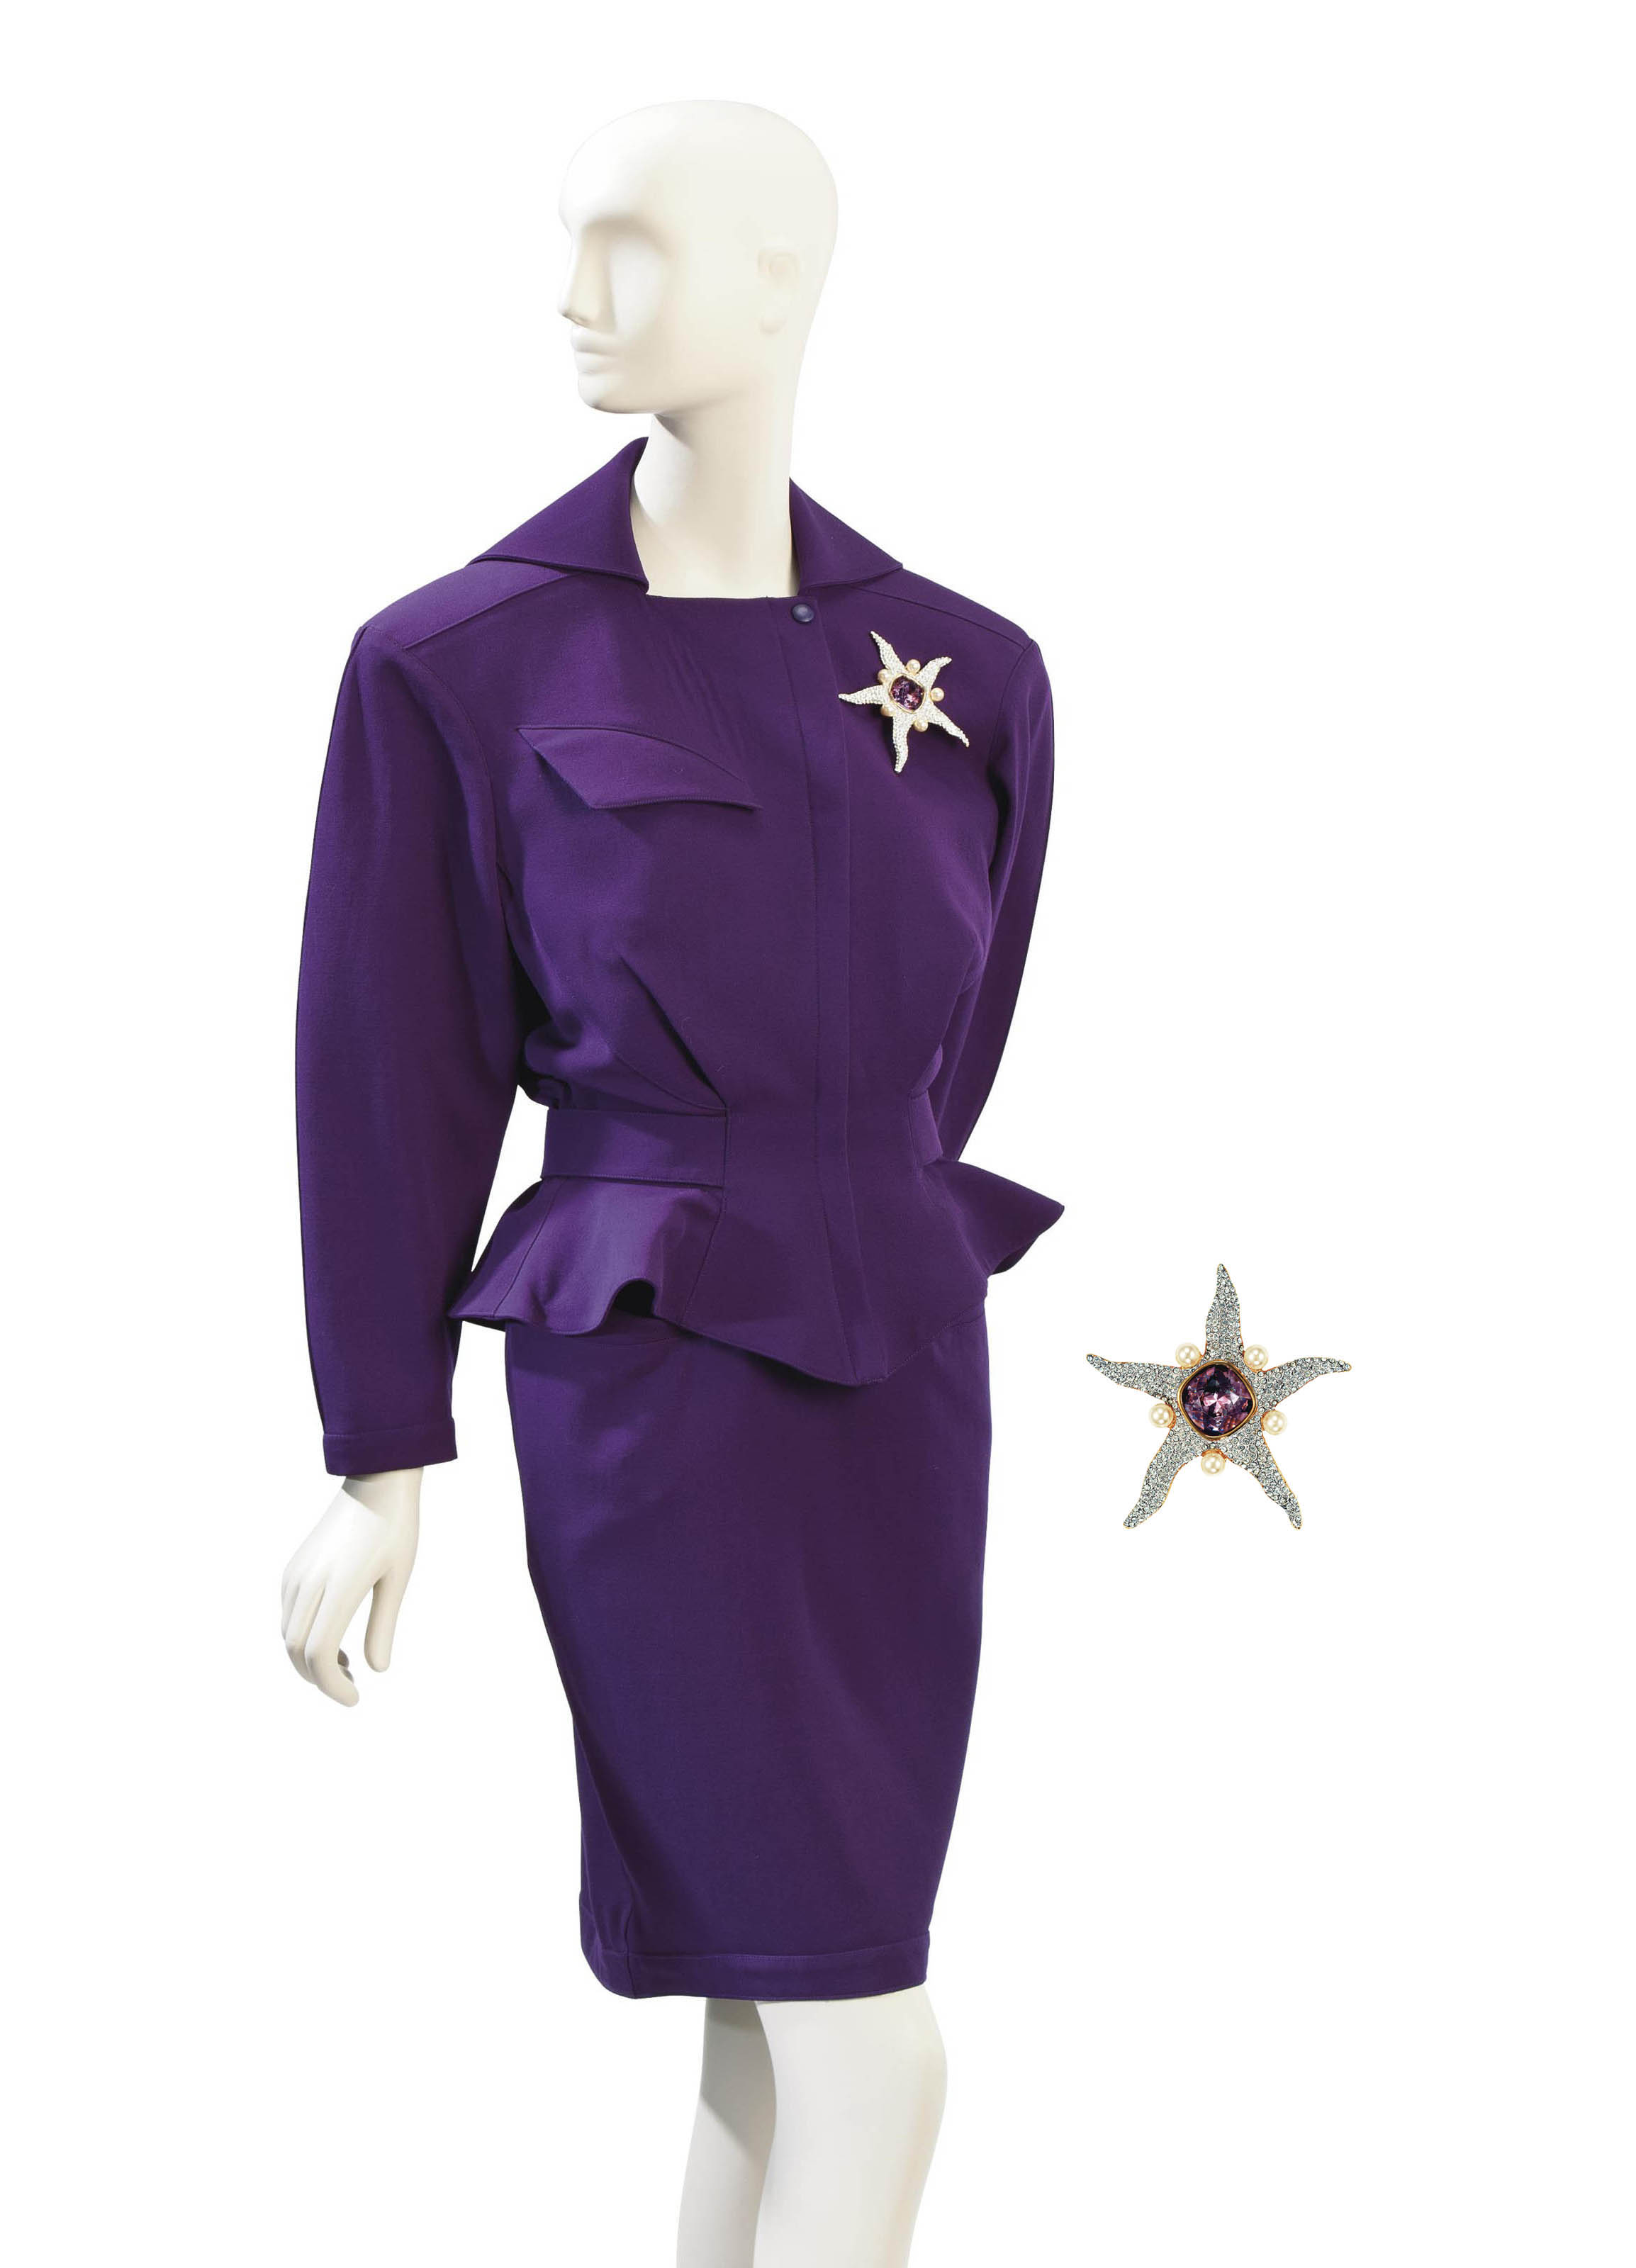 A THIERRY MUGLER PURPLE WOOL SUIT AND VALENTINO STARFISH-SHAPED BROOCH